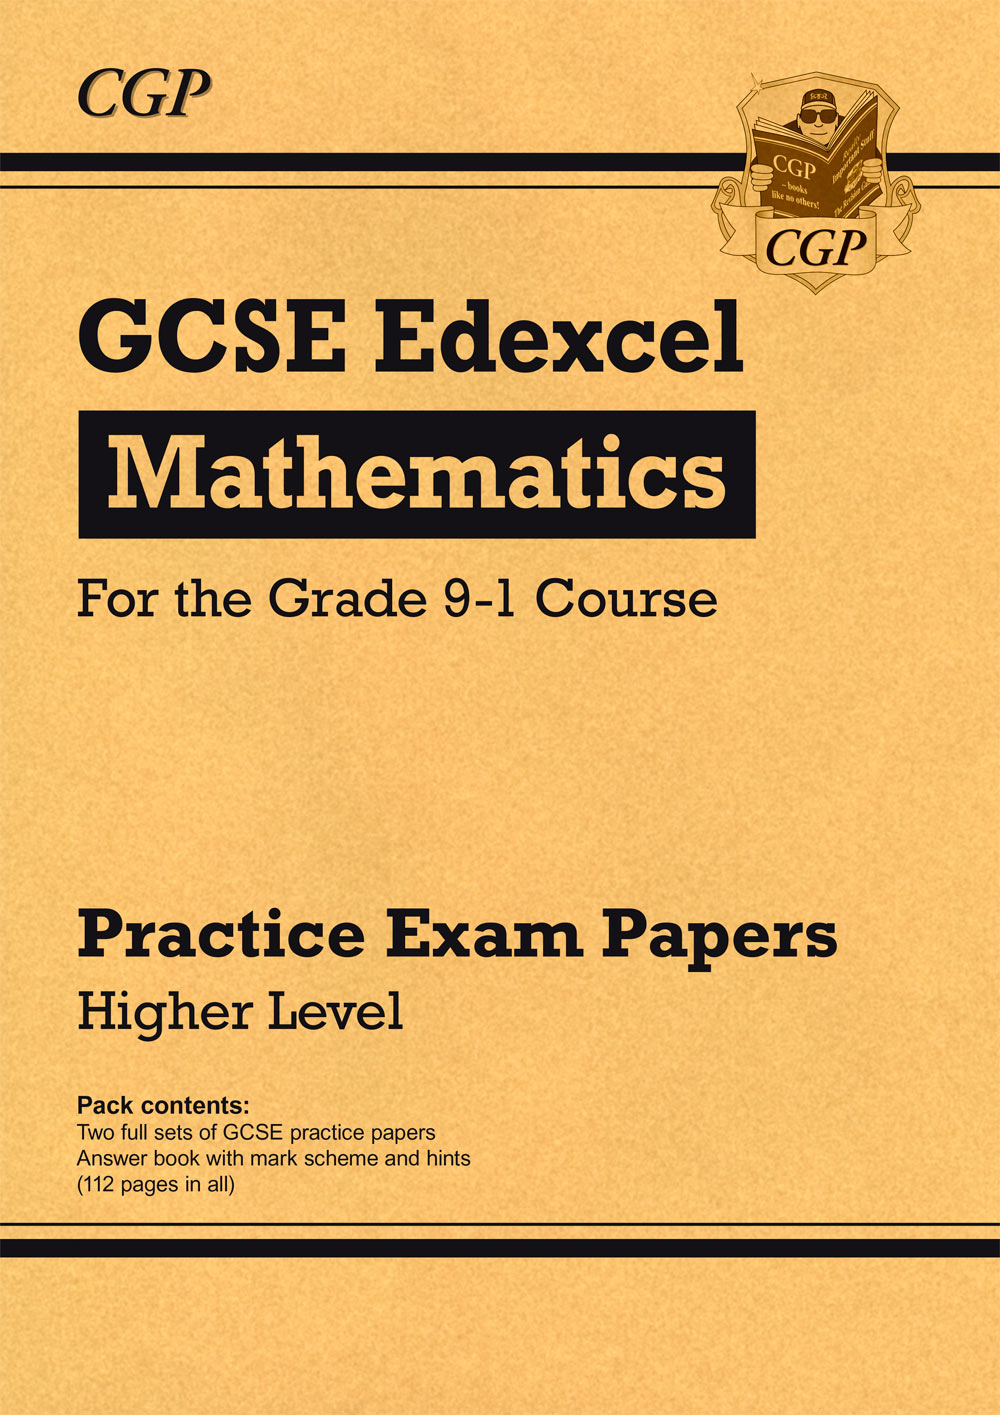 MXHP43 - GCSE Maths Edexcel Practice Papers: Higher - for the Grade 9-1 Course